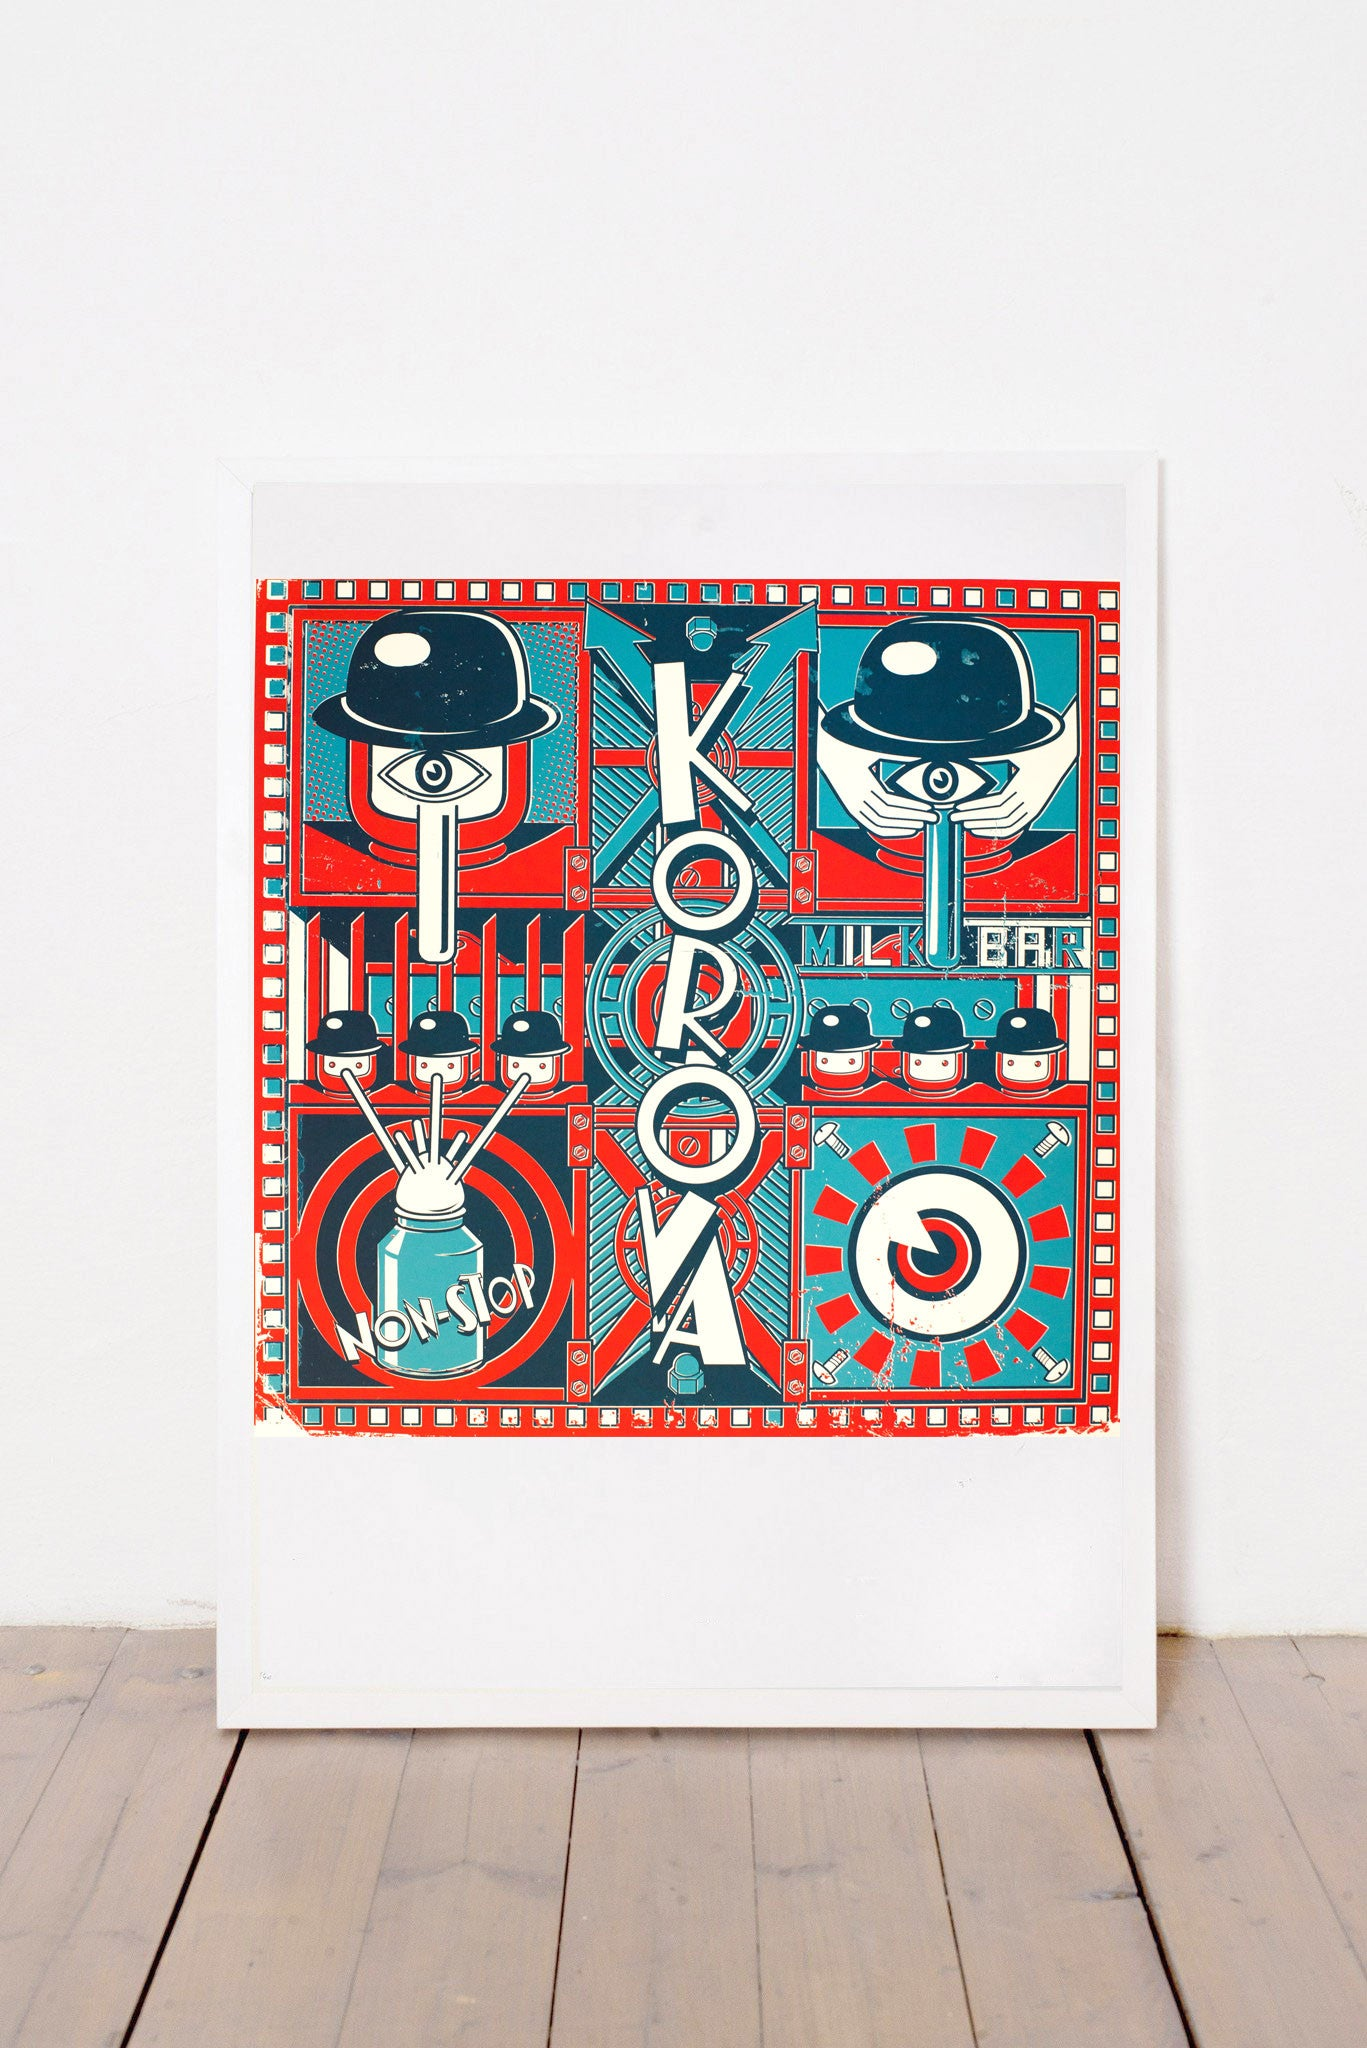 KOROVA PRINT BY ANDRÁS BARANYAI LIMITED EDITION NUMBERED AND SIGNED GRAPHICS PRINTA HAND-MADE WATER-BASED SILKSCREEN PRINT ON RECYCLED PAPER